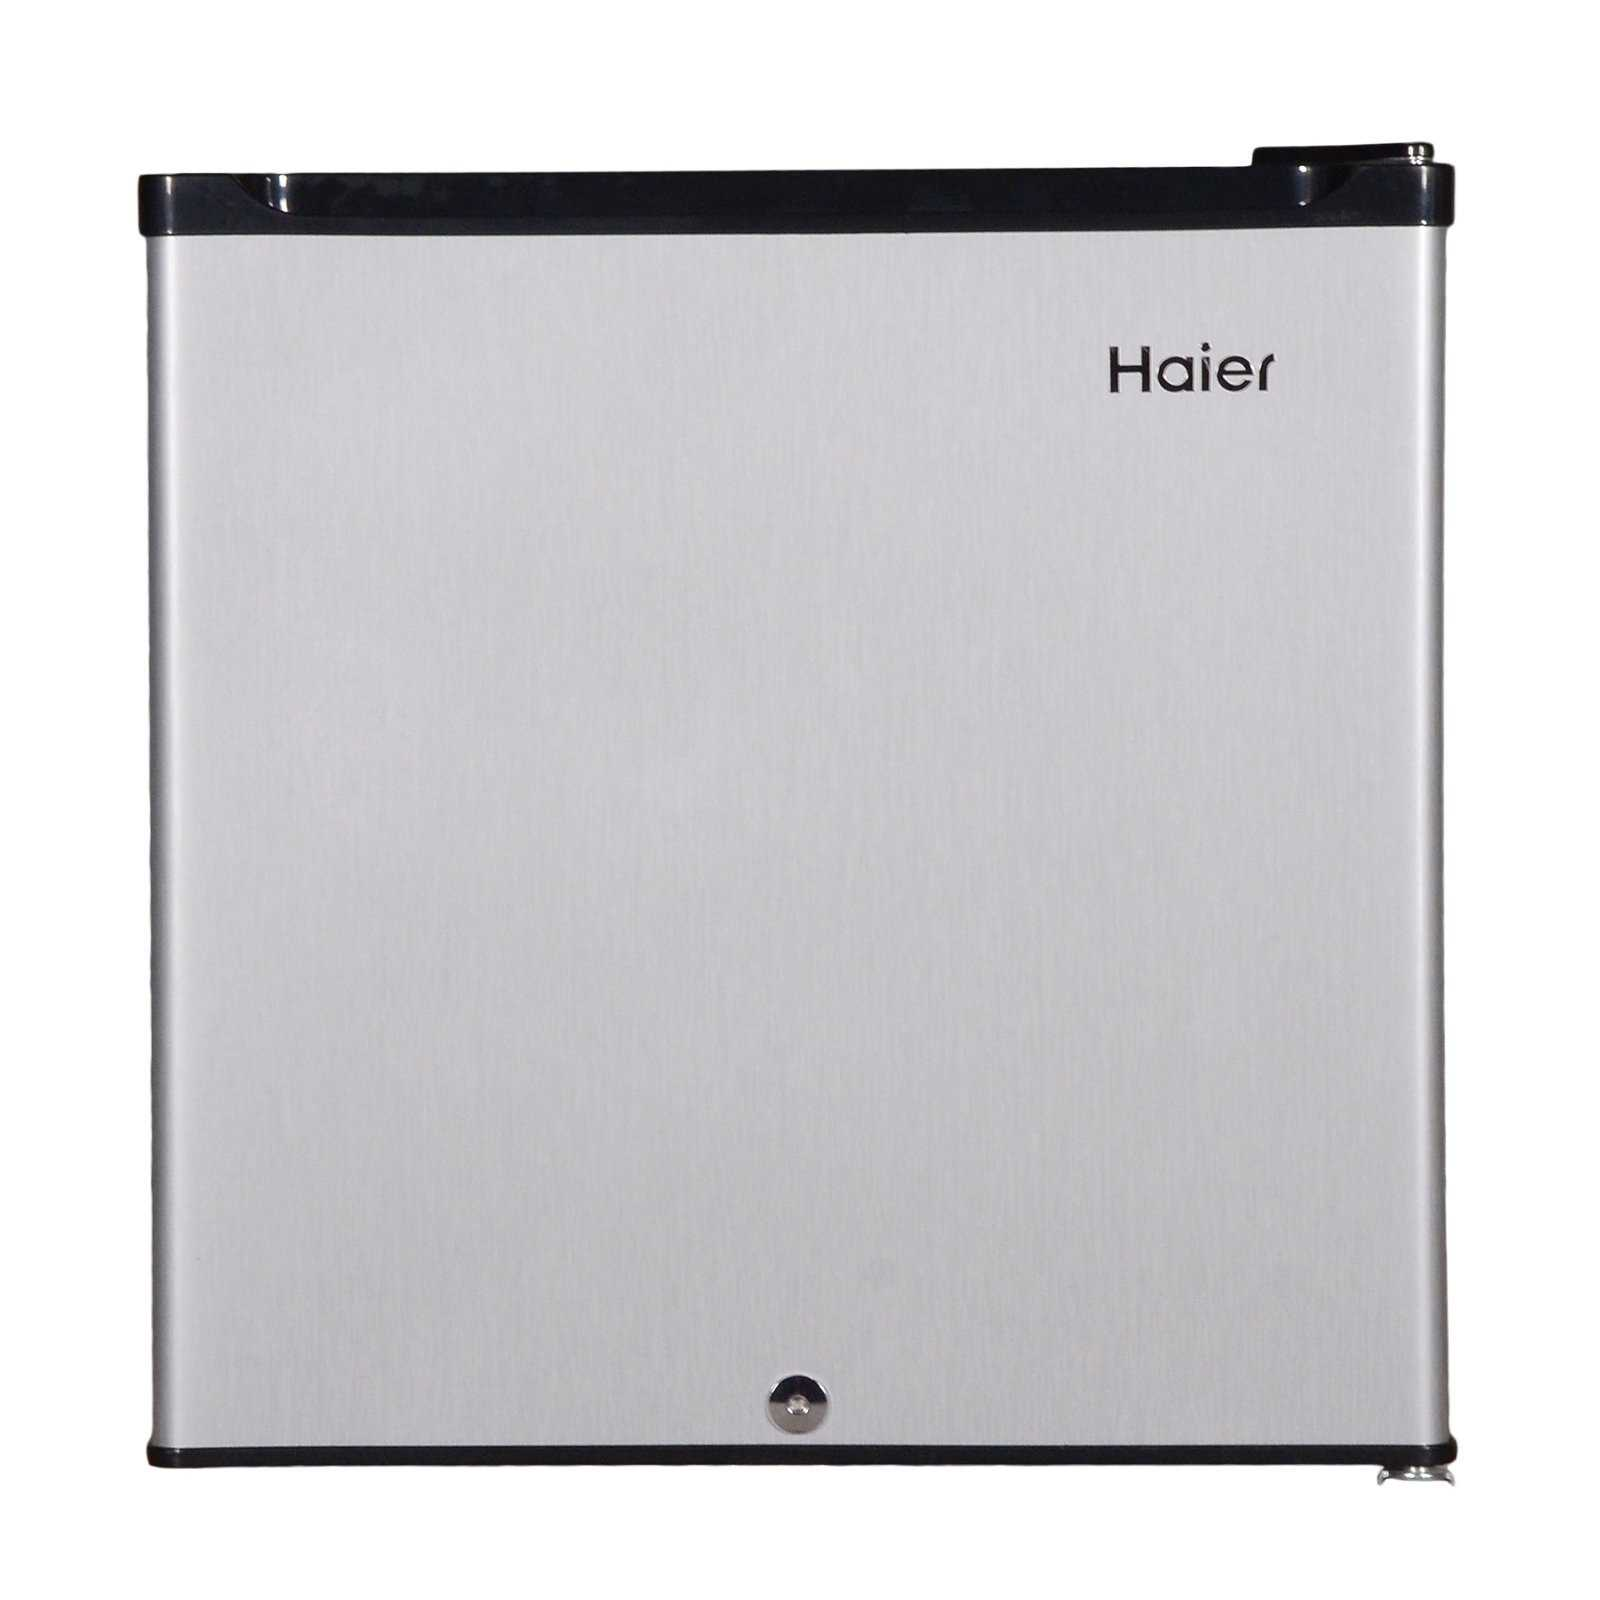 Haier HR 62HP Single Door 62 Litres Direct Cool Refrigerator